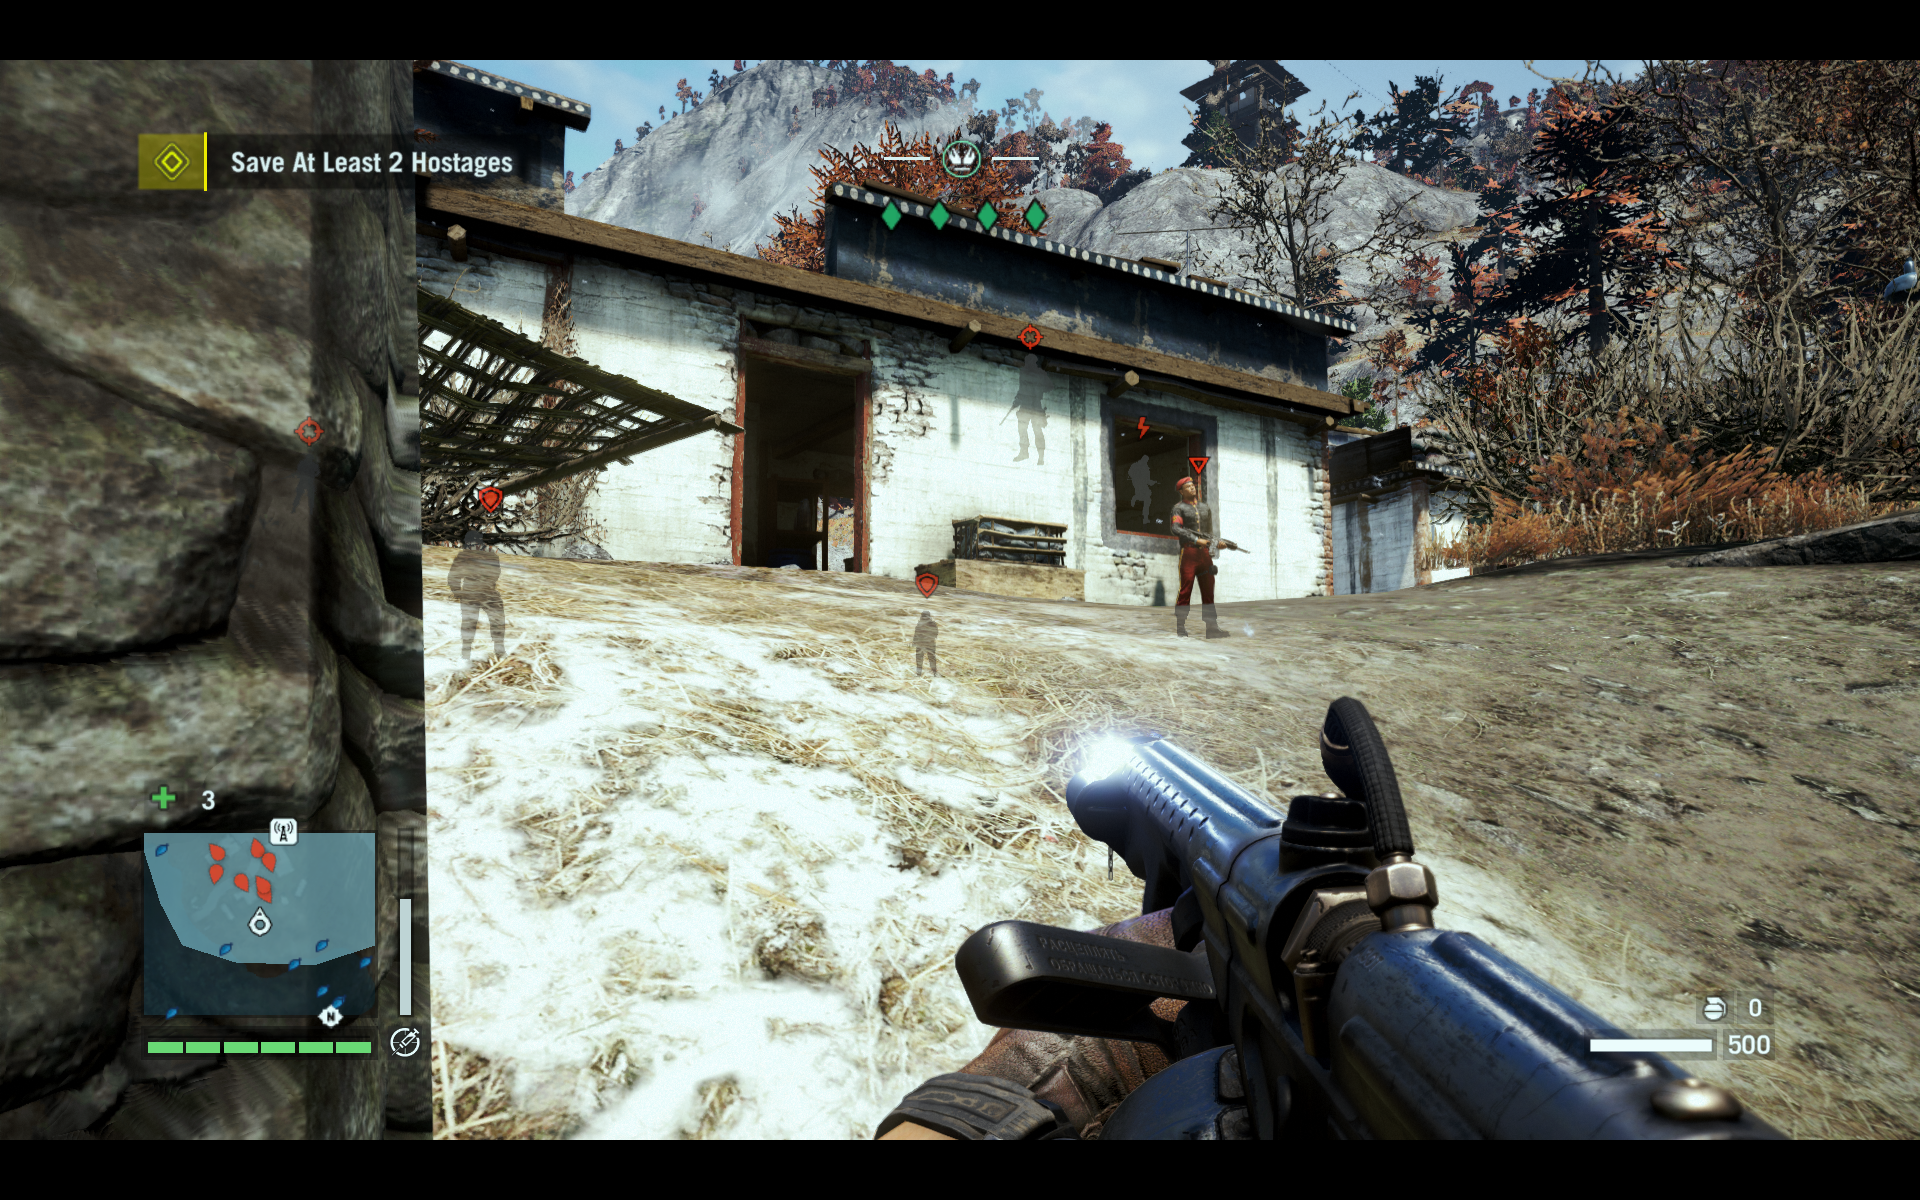 Far Cry 4 hunting syringe